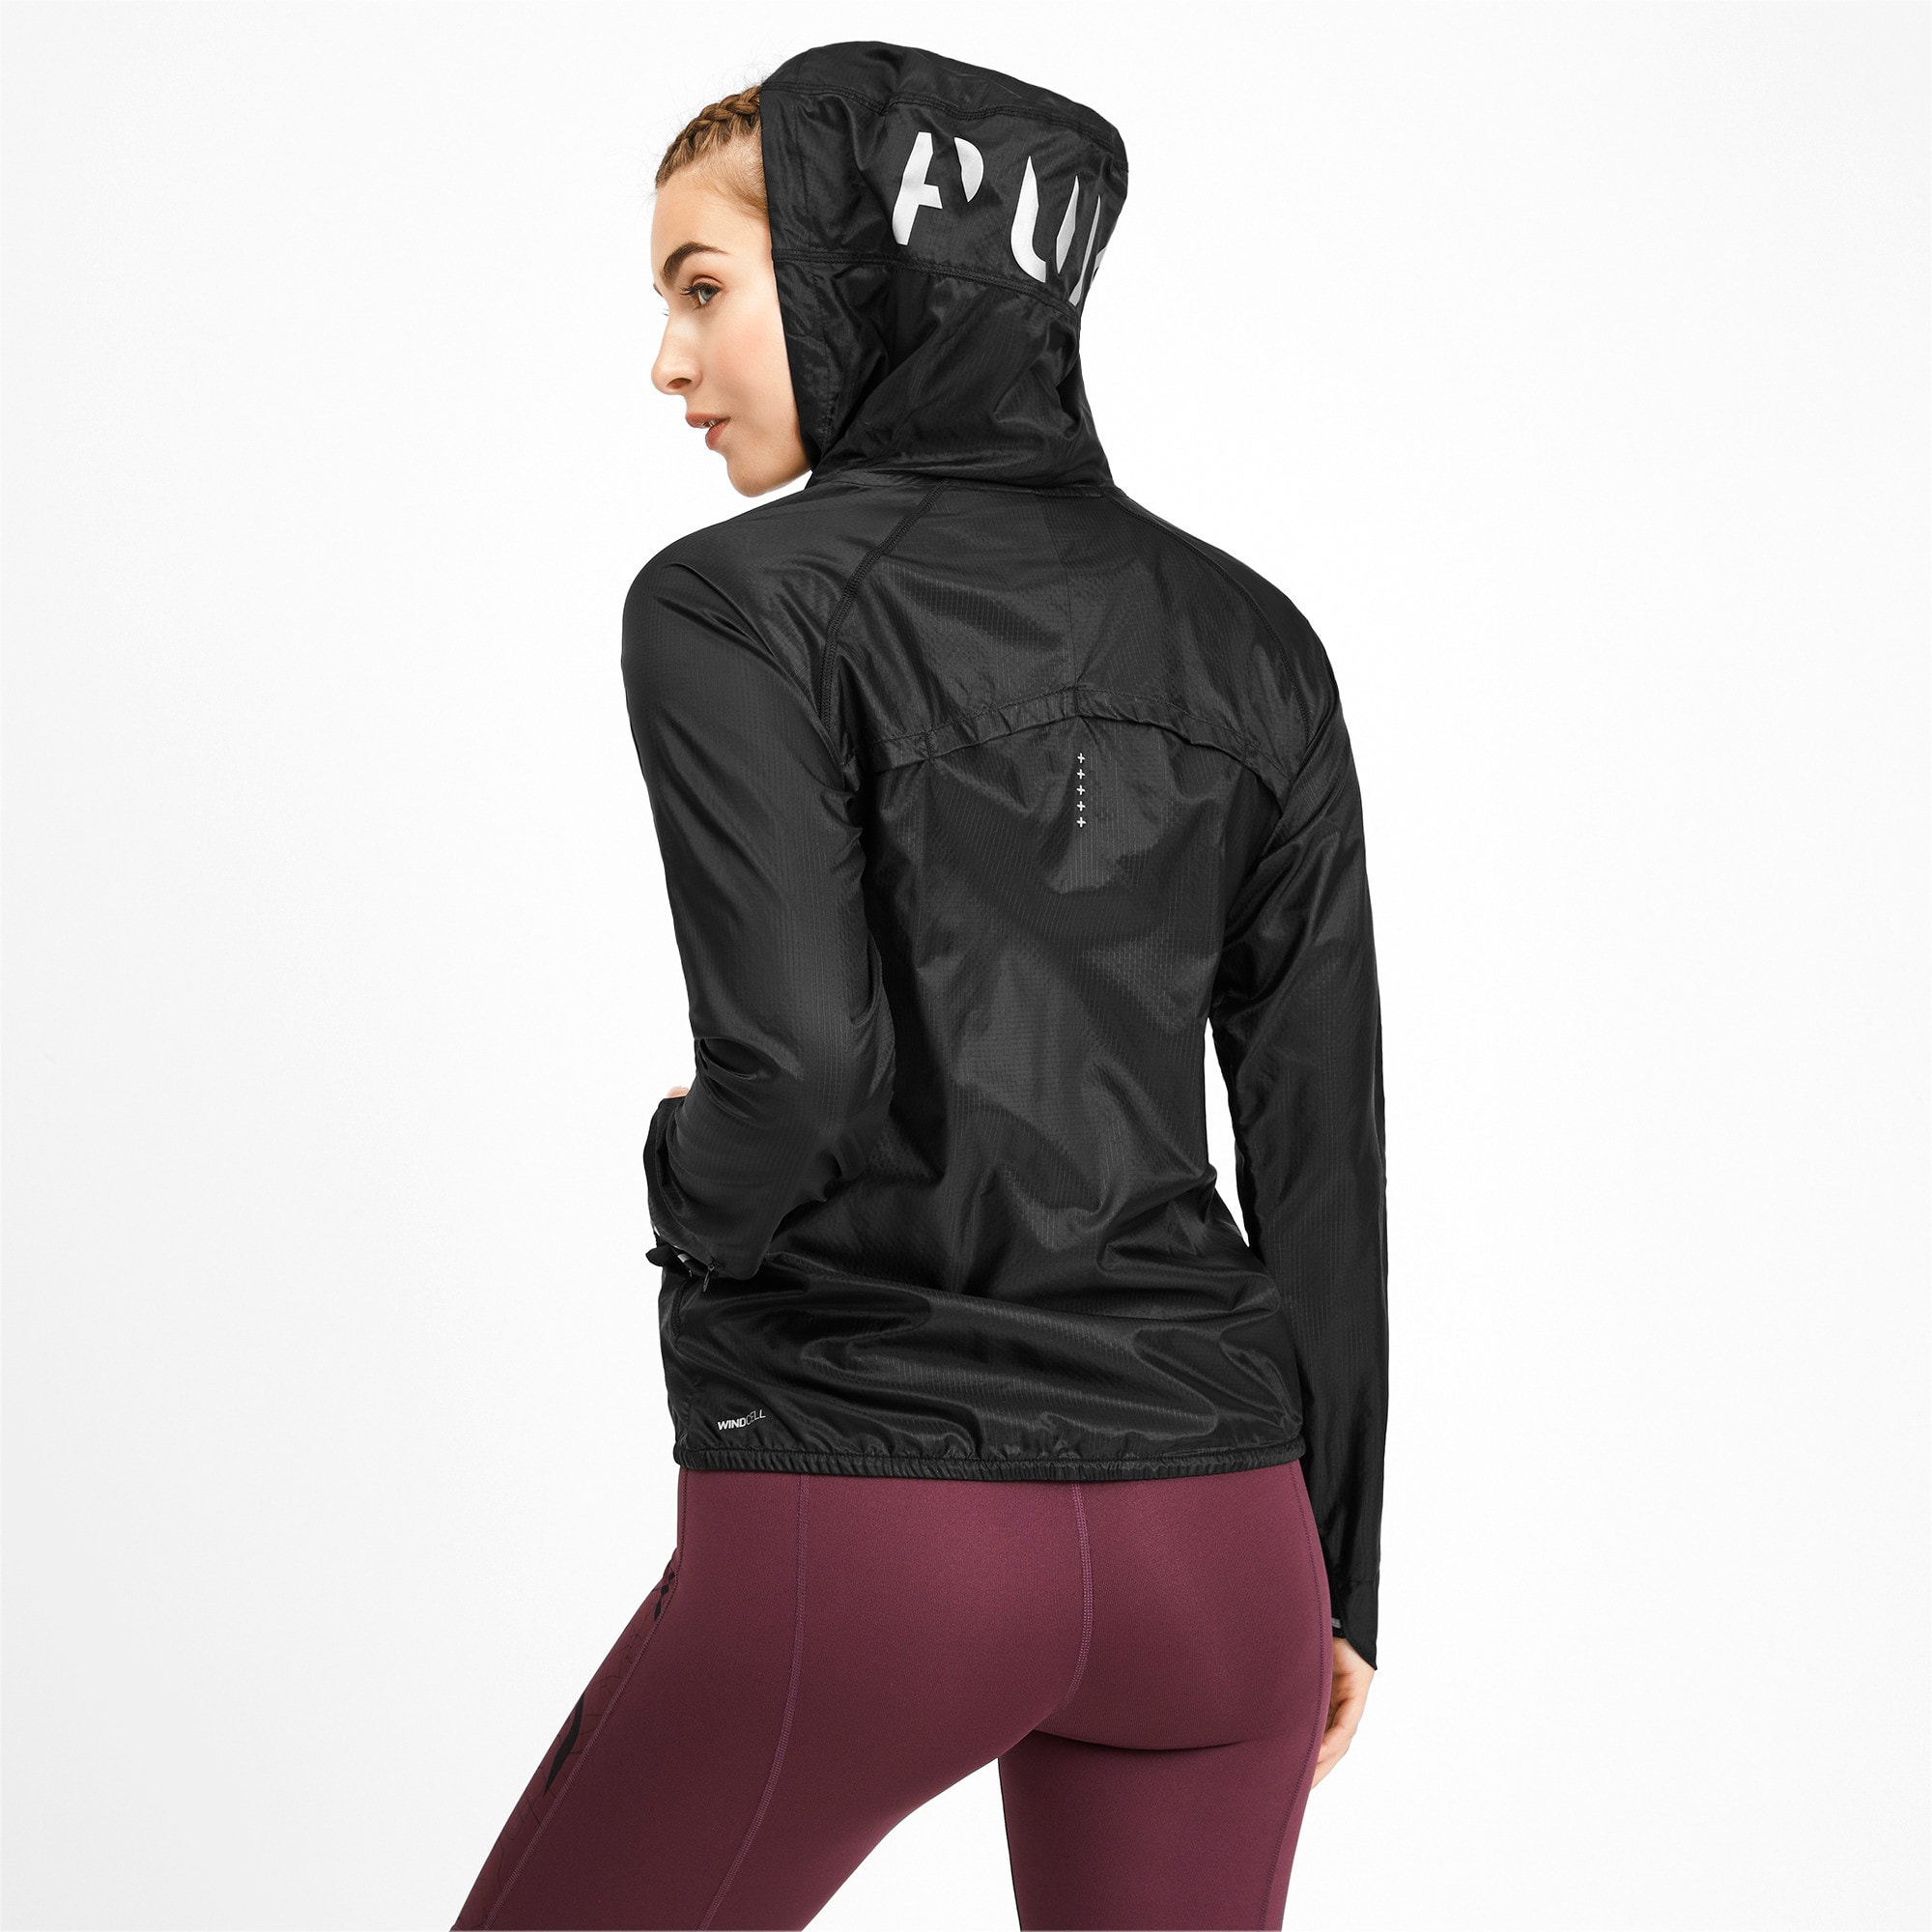 detailed look ed8d3 9cce3 Giacca Running con cappuccio e zip Get Fast donna